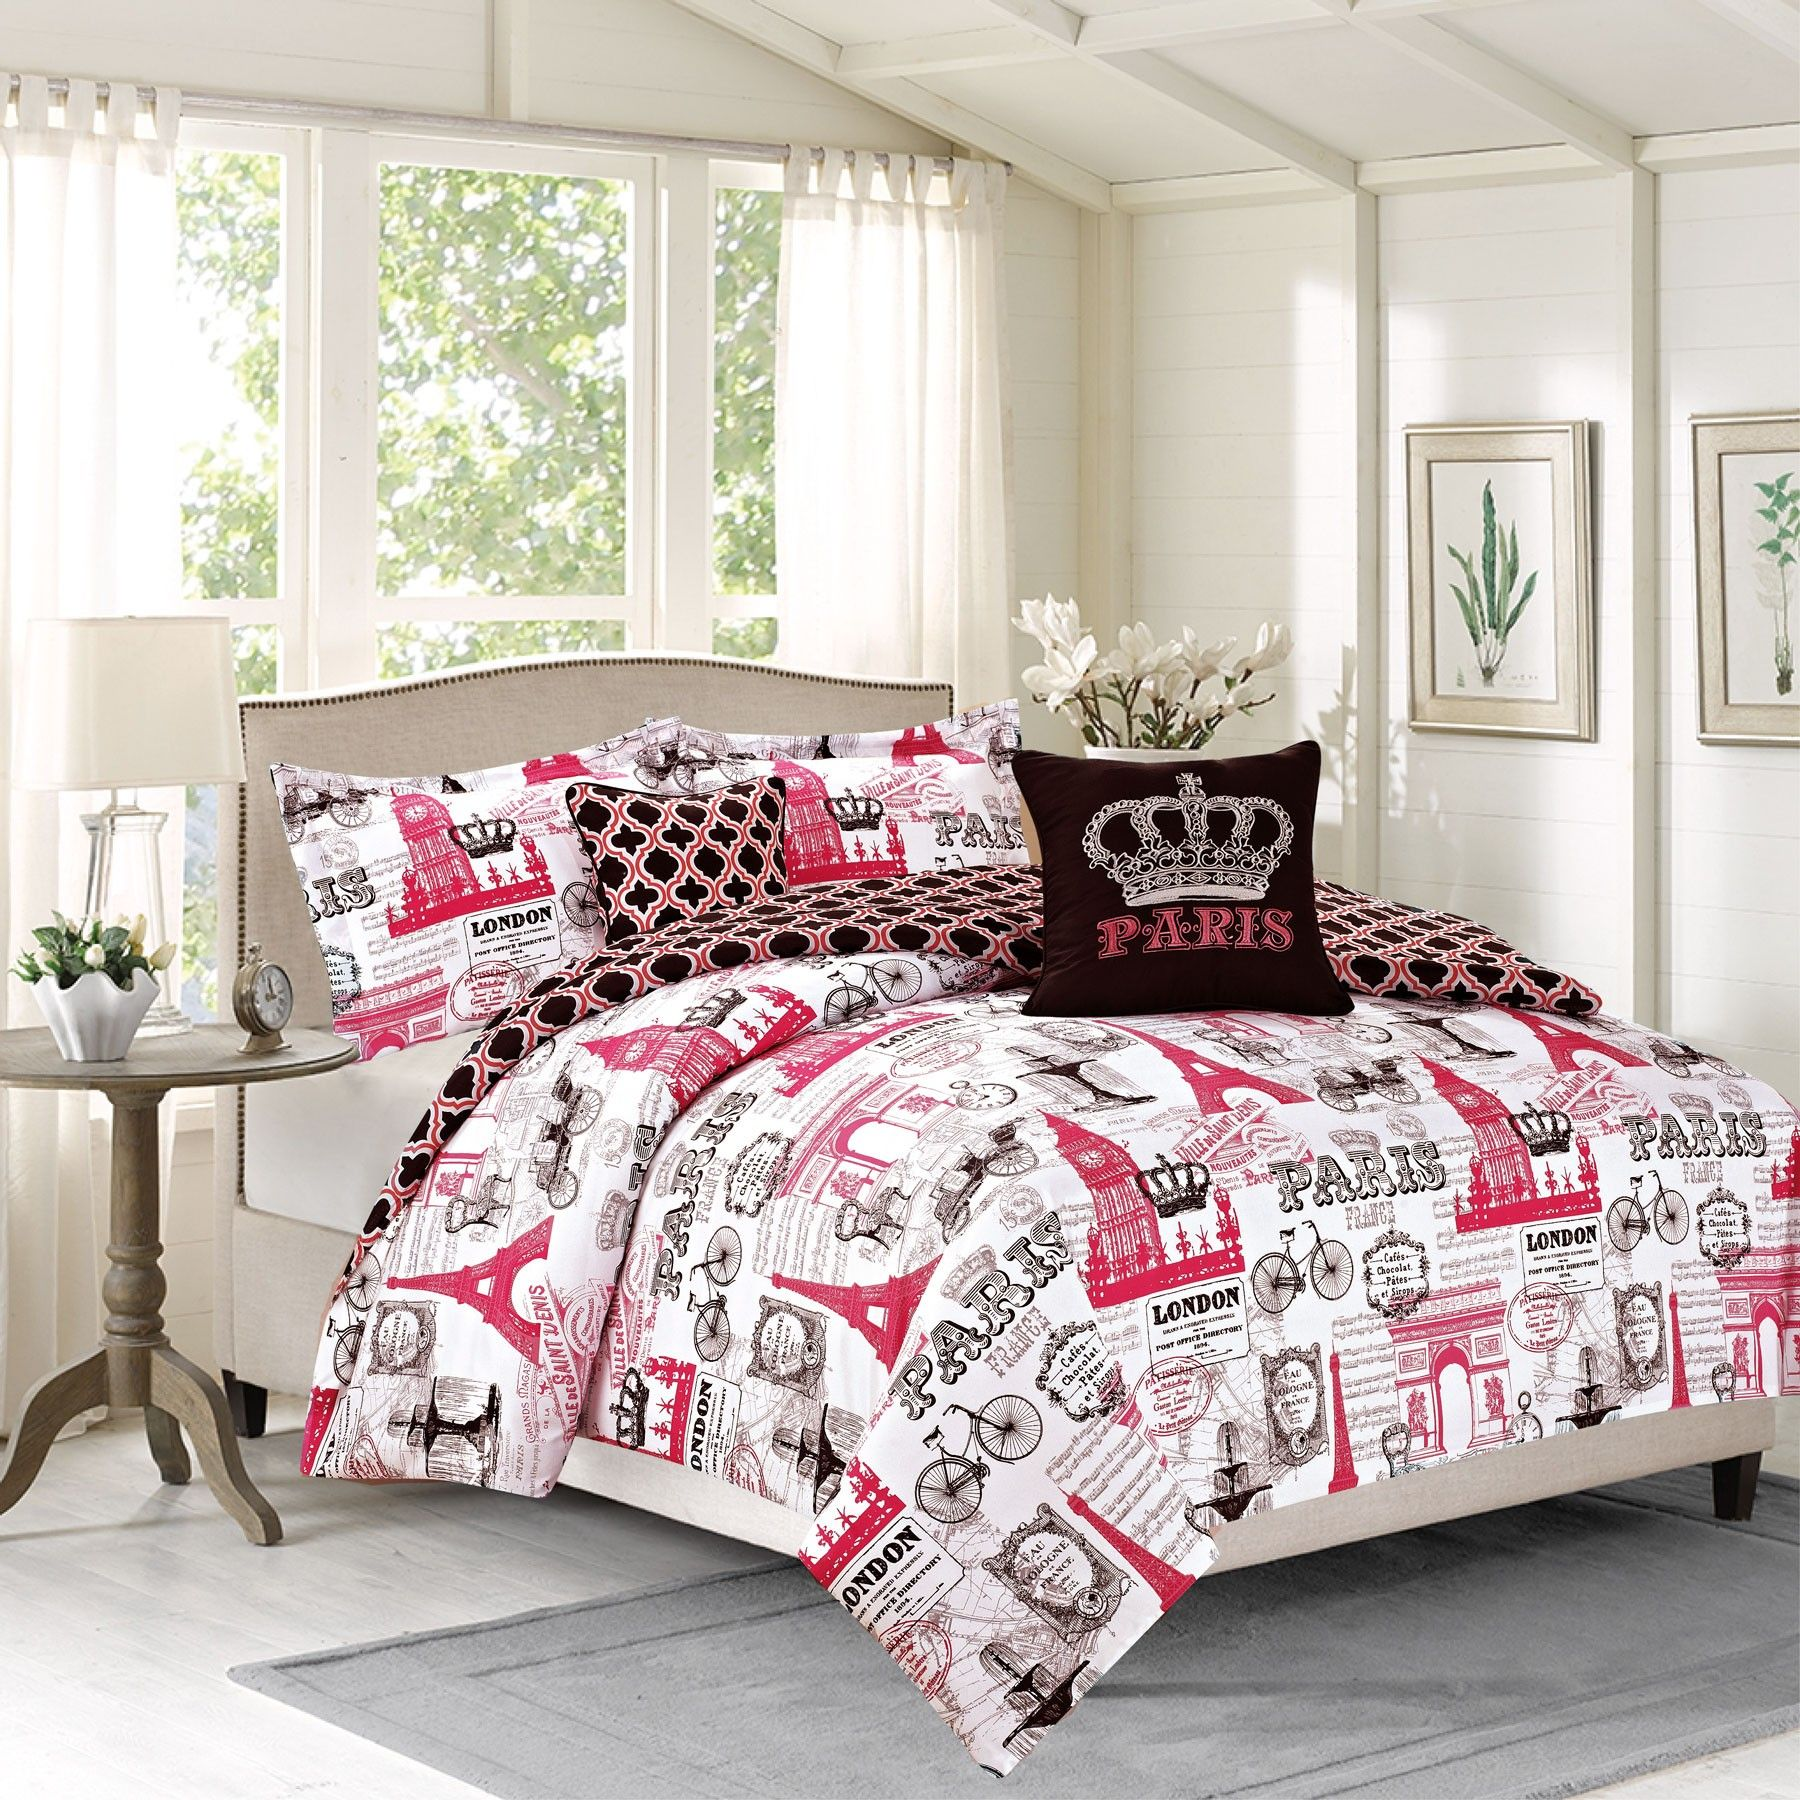 Crest Home Bon Voyage Full 5 Piece Paris London Bedding Comforter